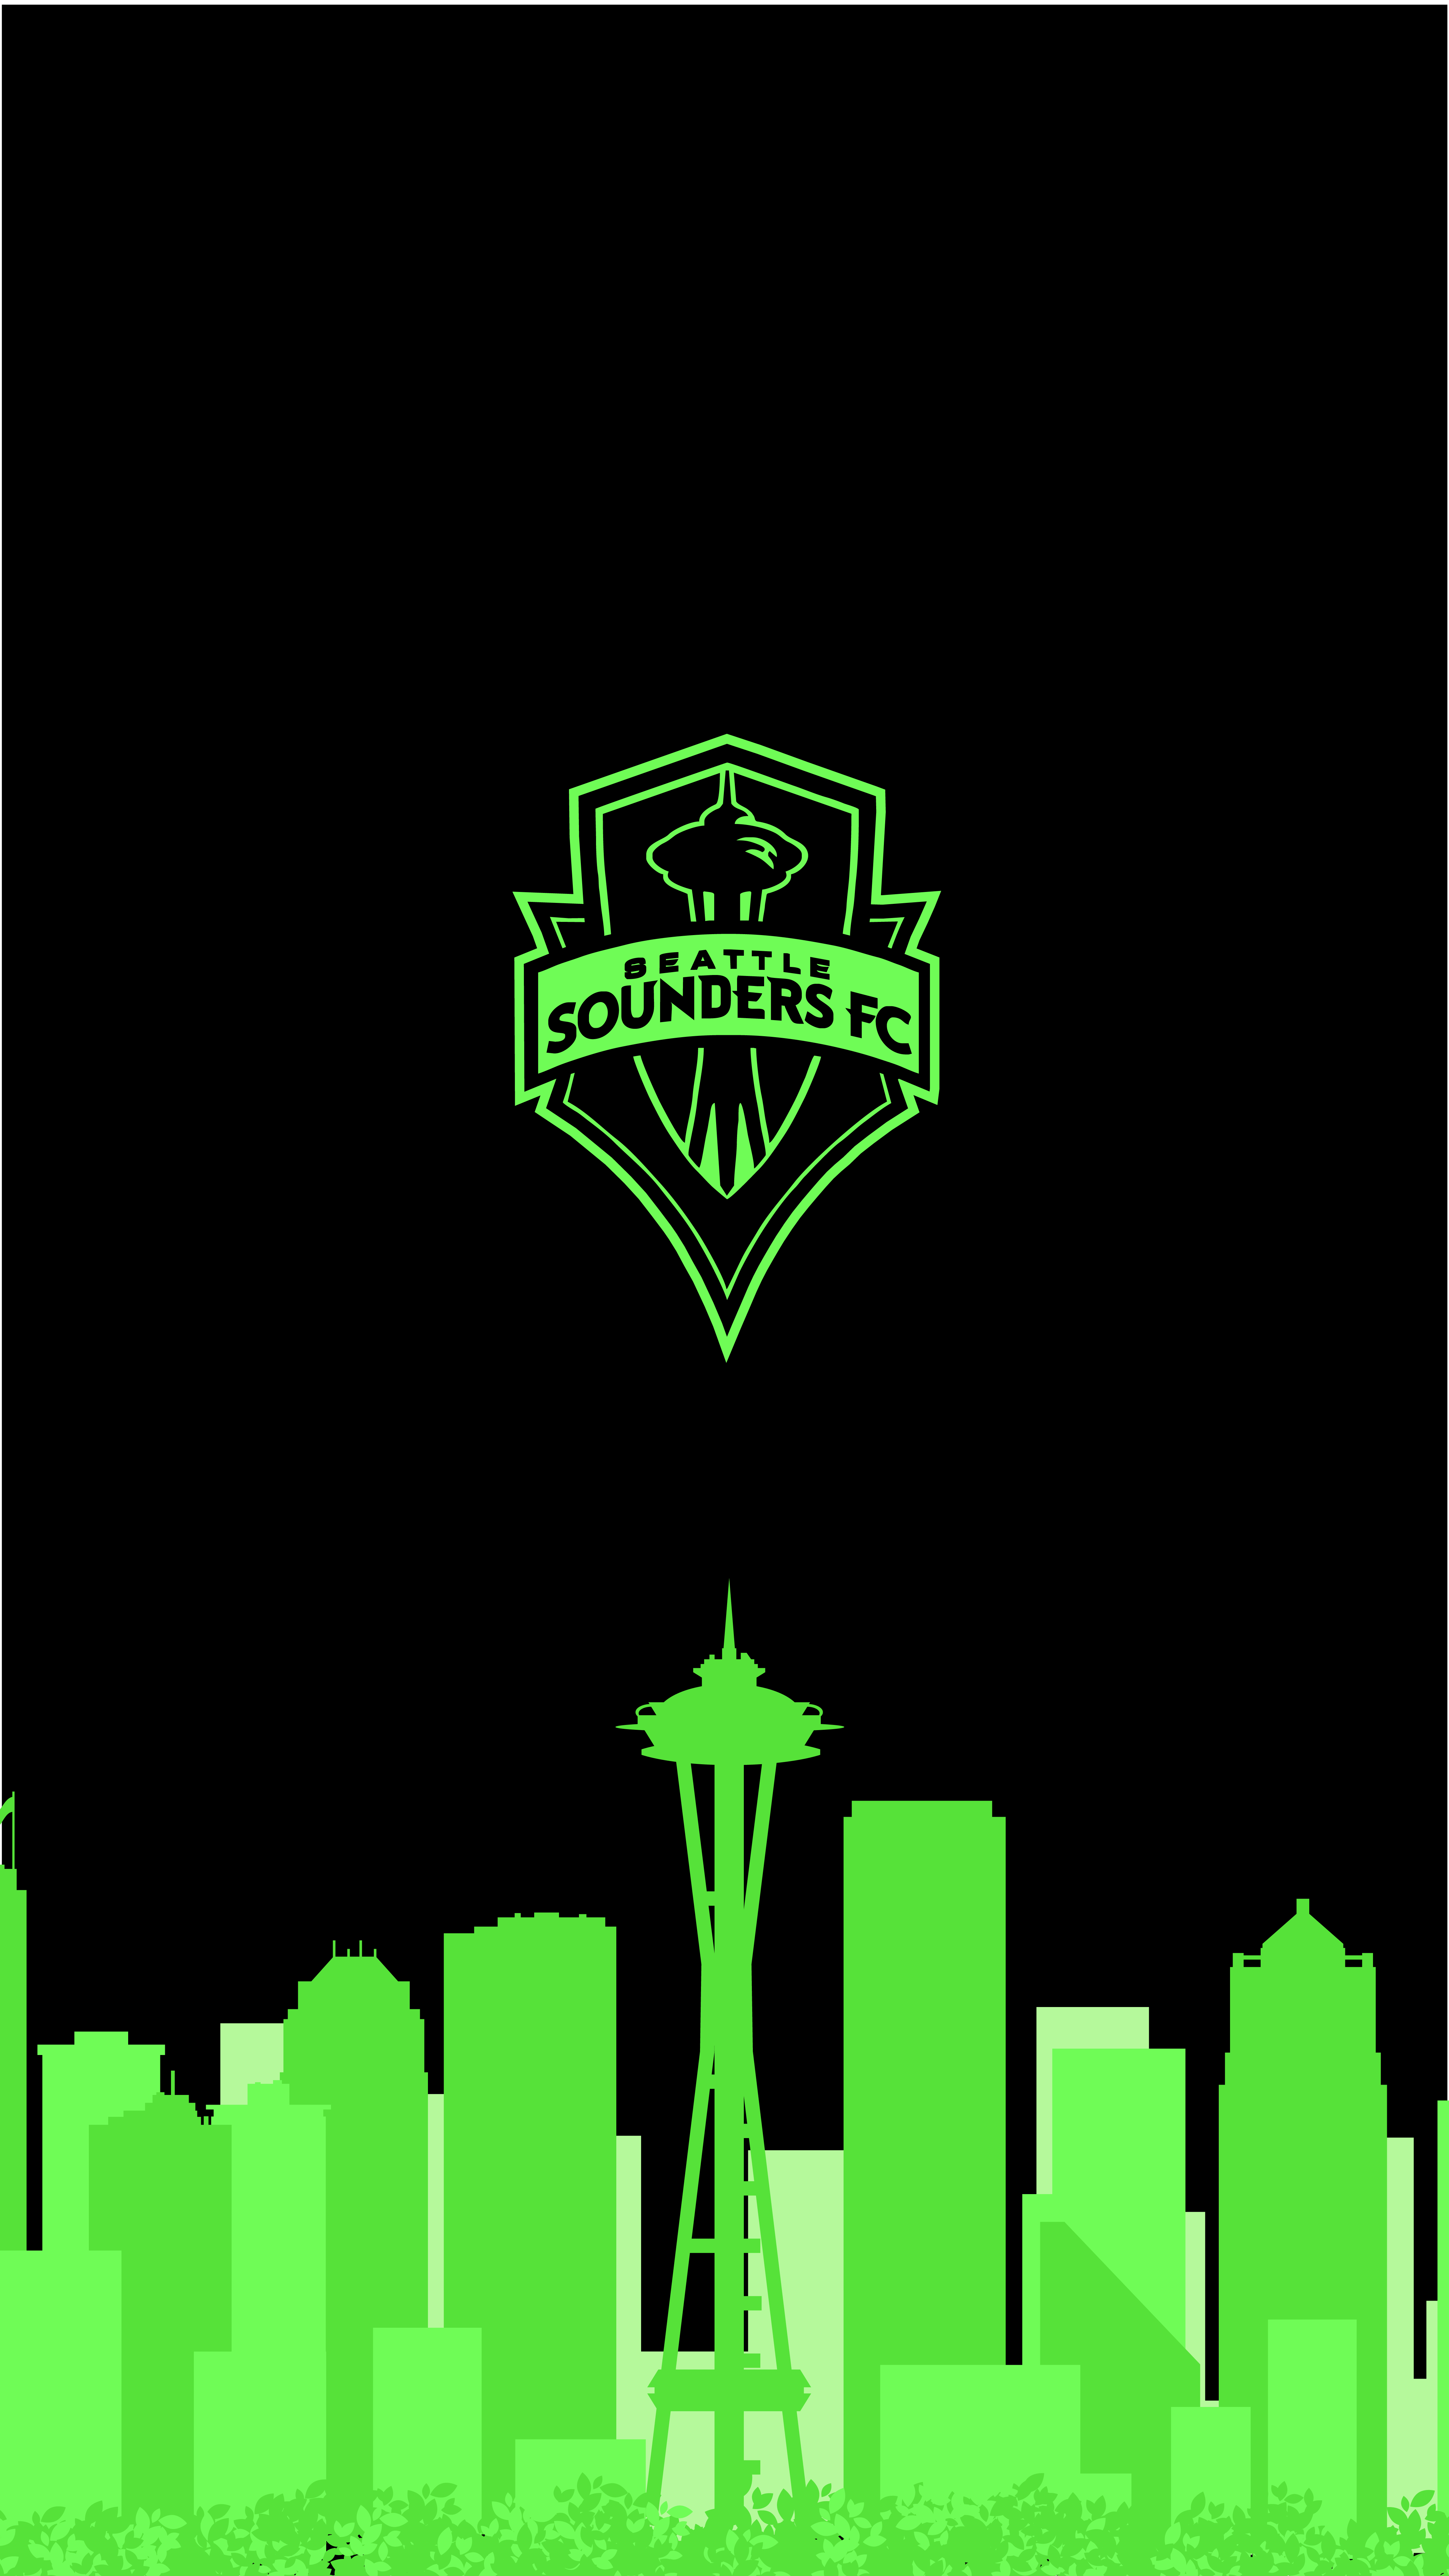 Sounders Alternate Wallpapers. Enjoy! : SoundersFC